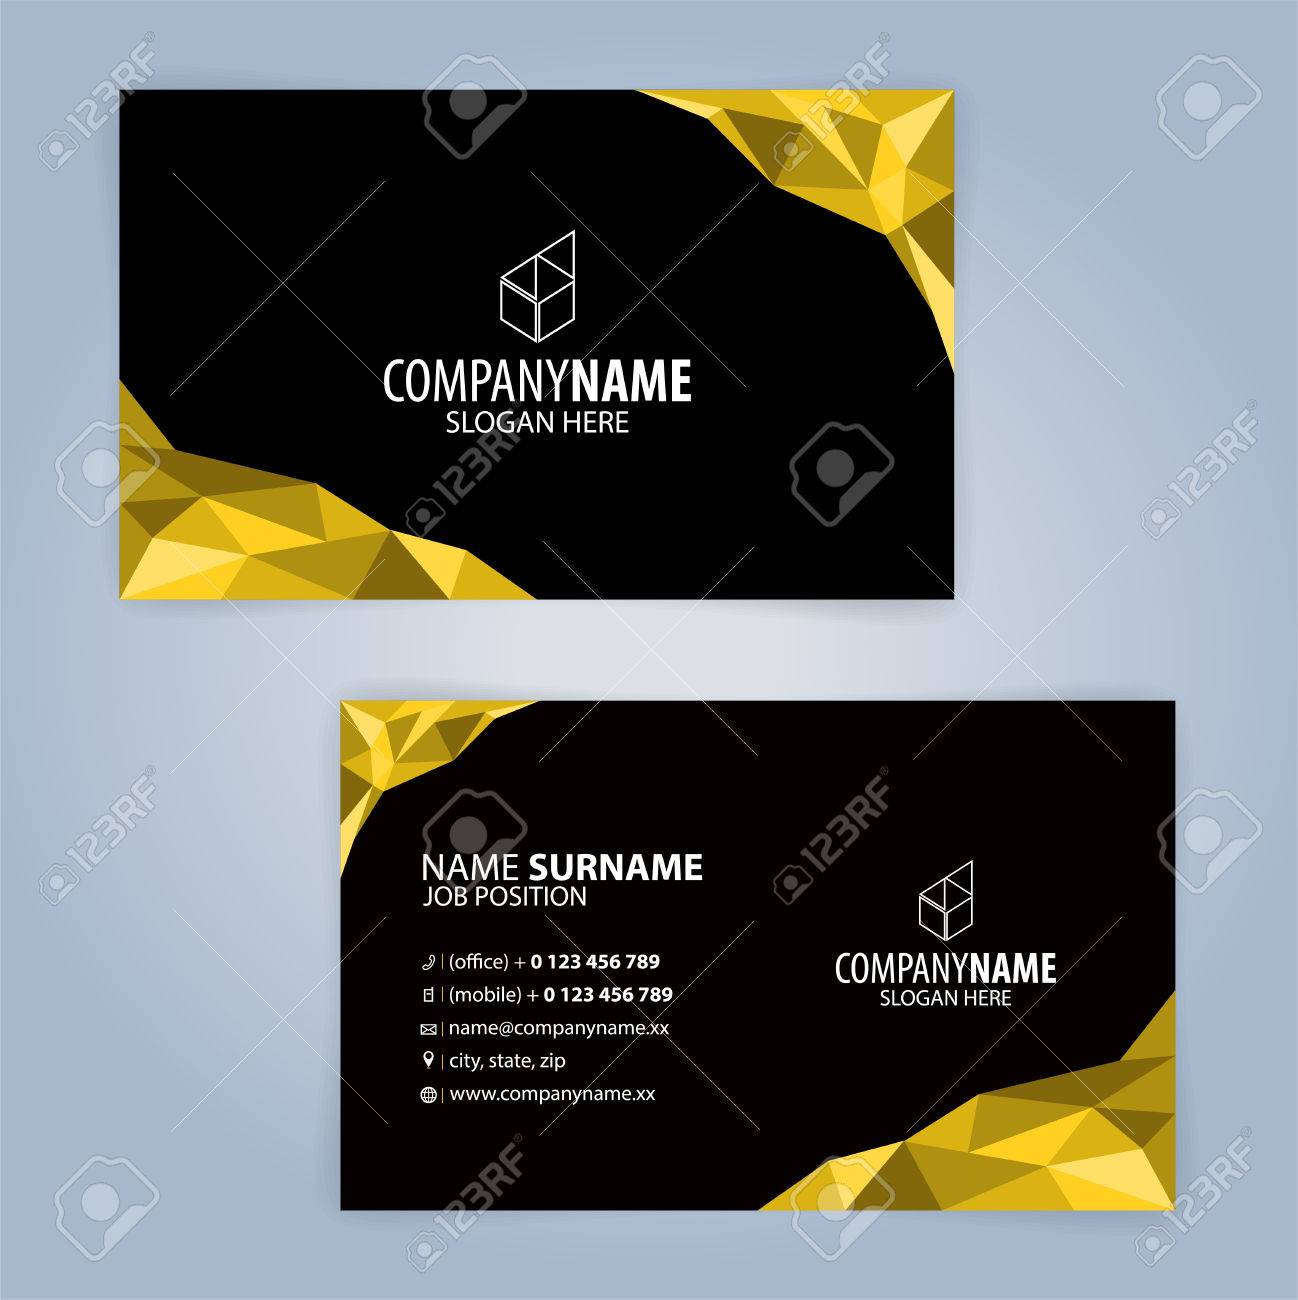 Yellow and black modern business card template illustration vector yellow and black modern business card template illustration vector 10 cheaphphosting Gallery